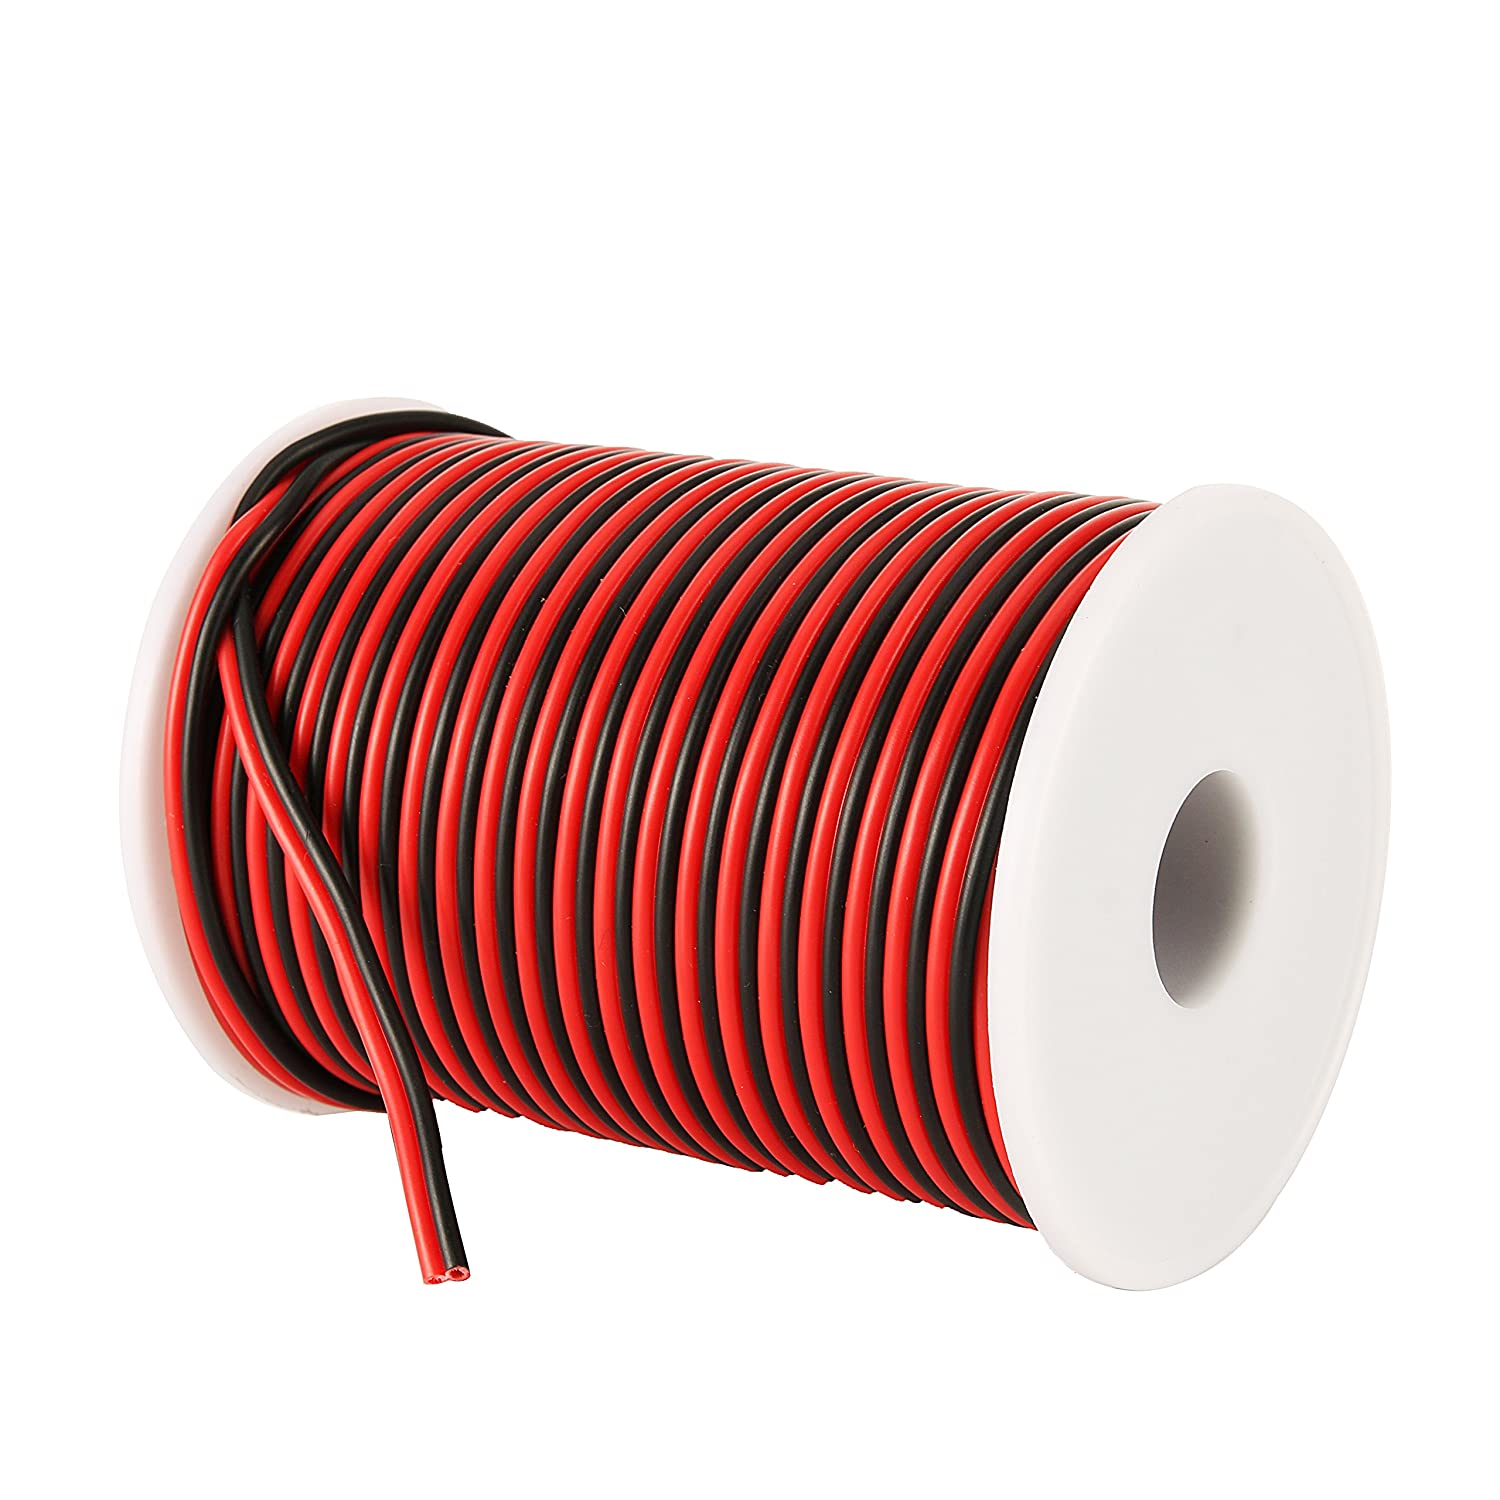 Electrical Wire 12v Home Wiring Basics C Able 100ft 18 Awg Gauge Hookup Red Black Copper Stranded Auto 2